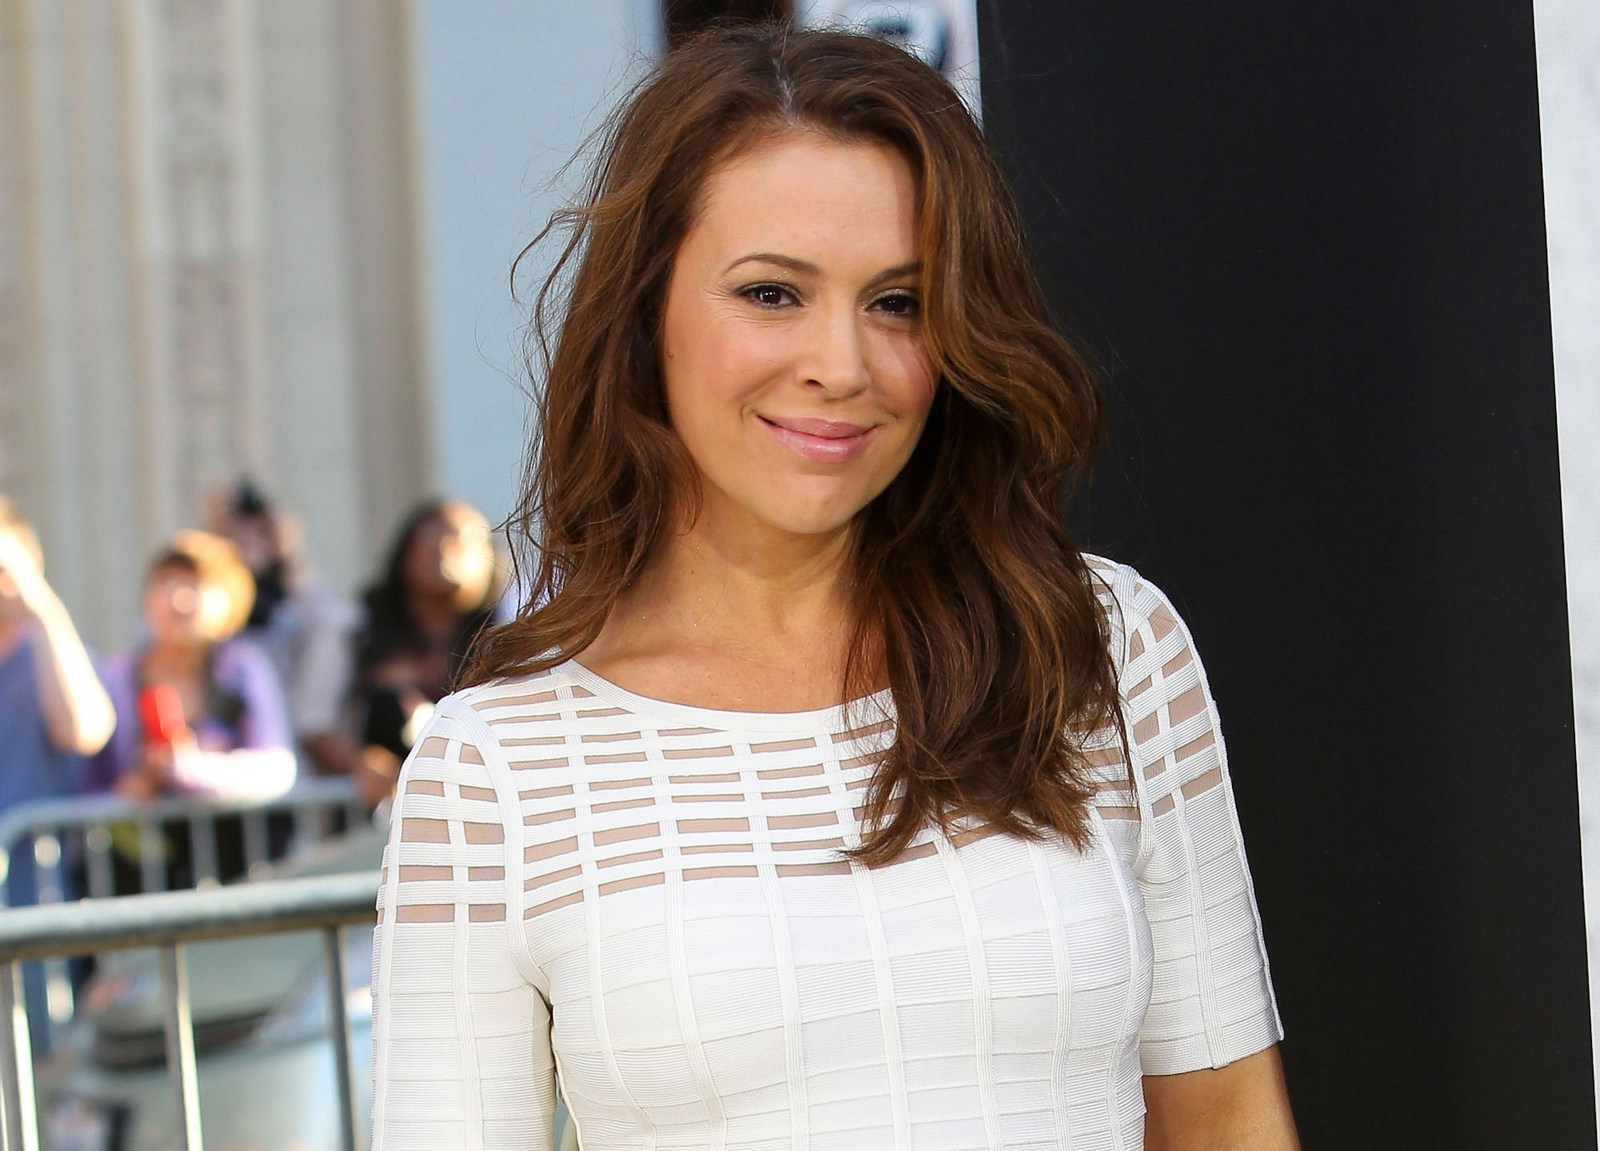 Alyssa Milano spoke frankly about her mental illness